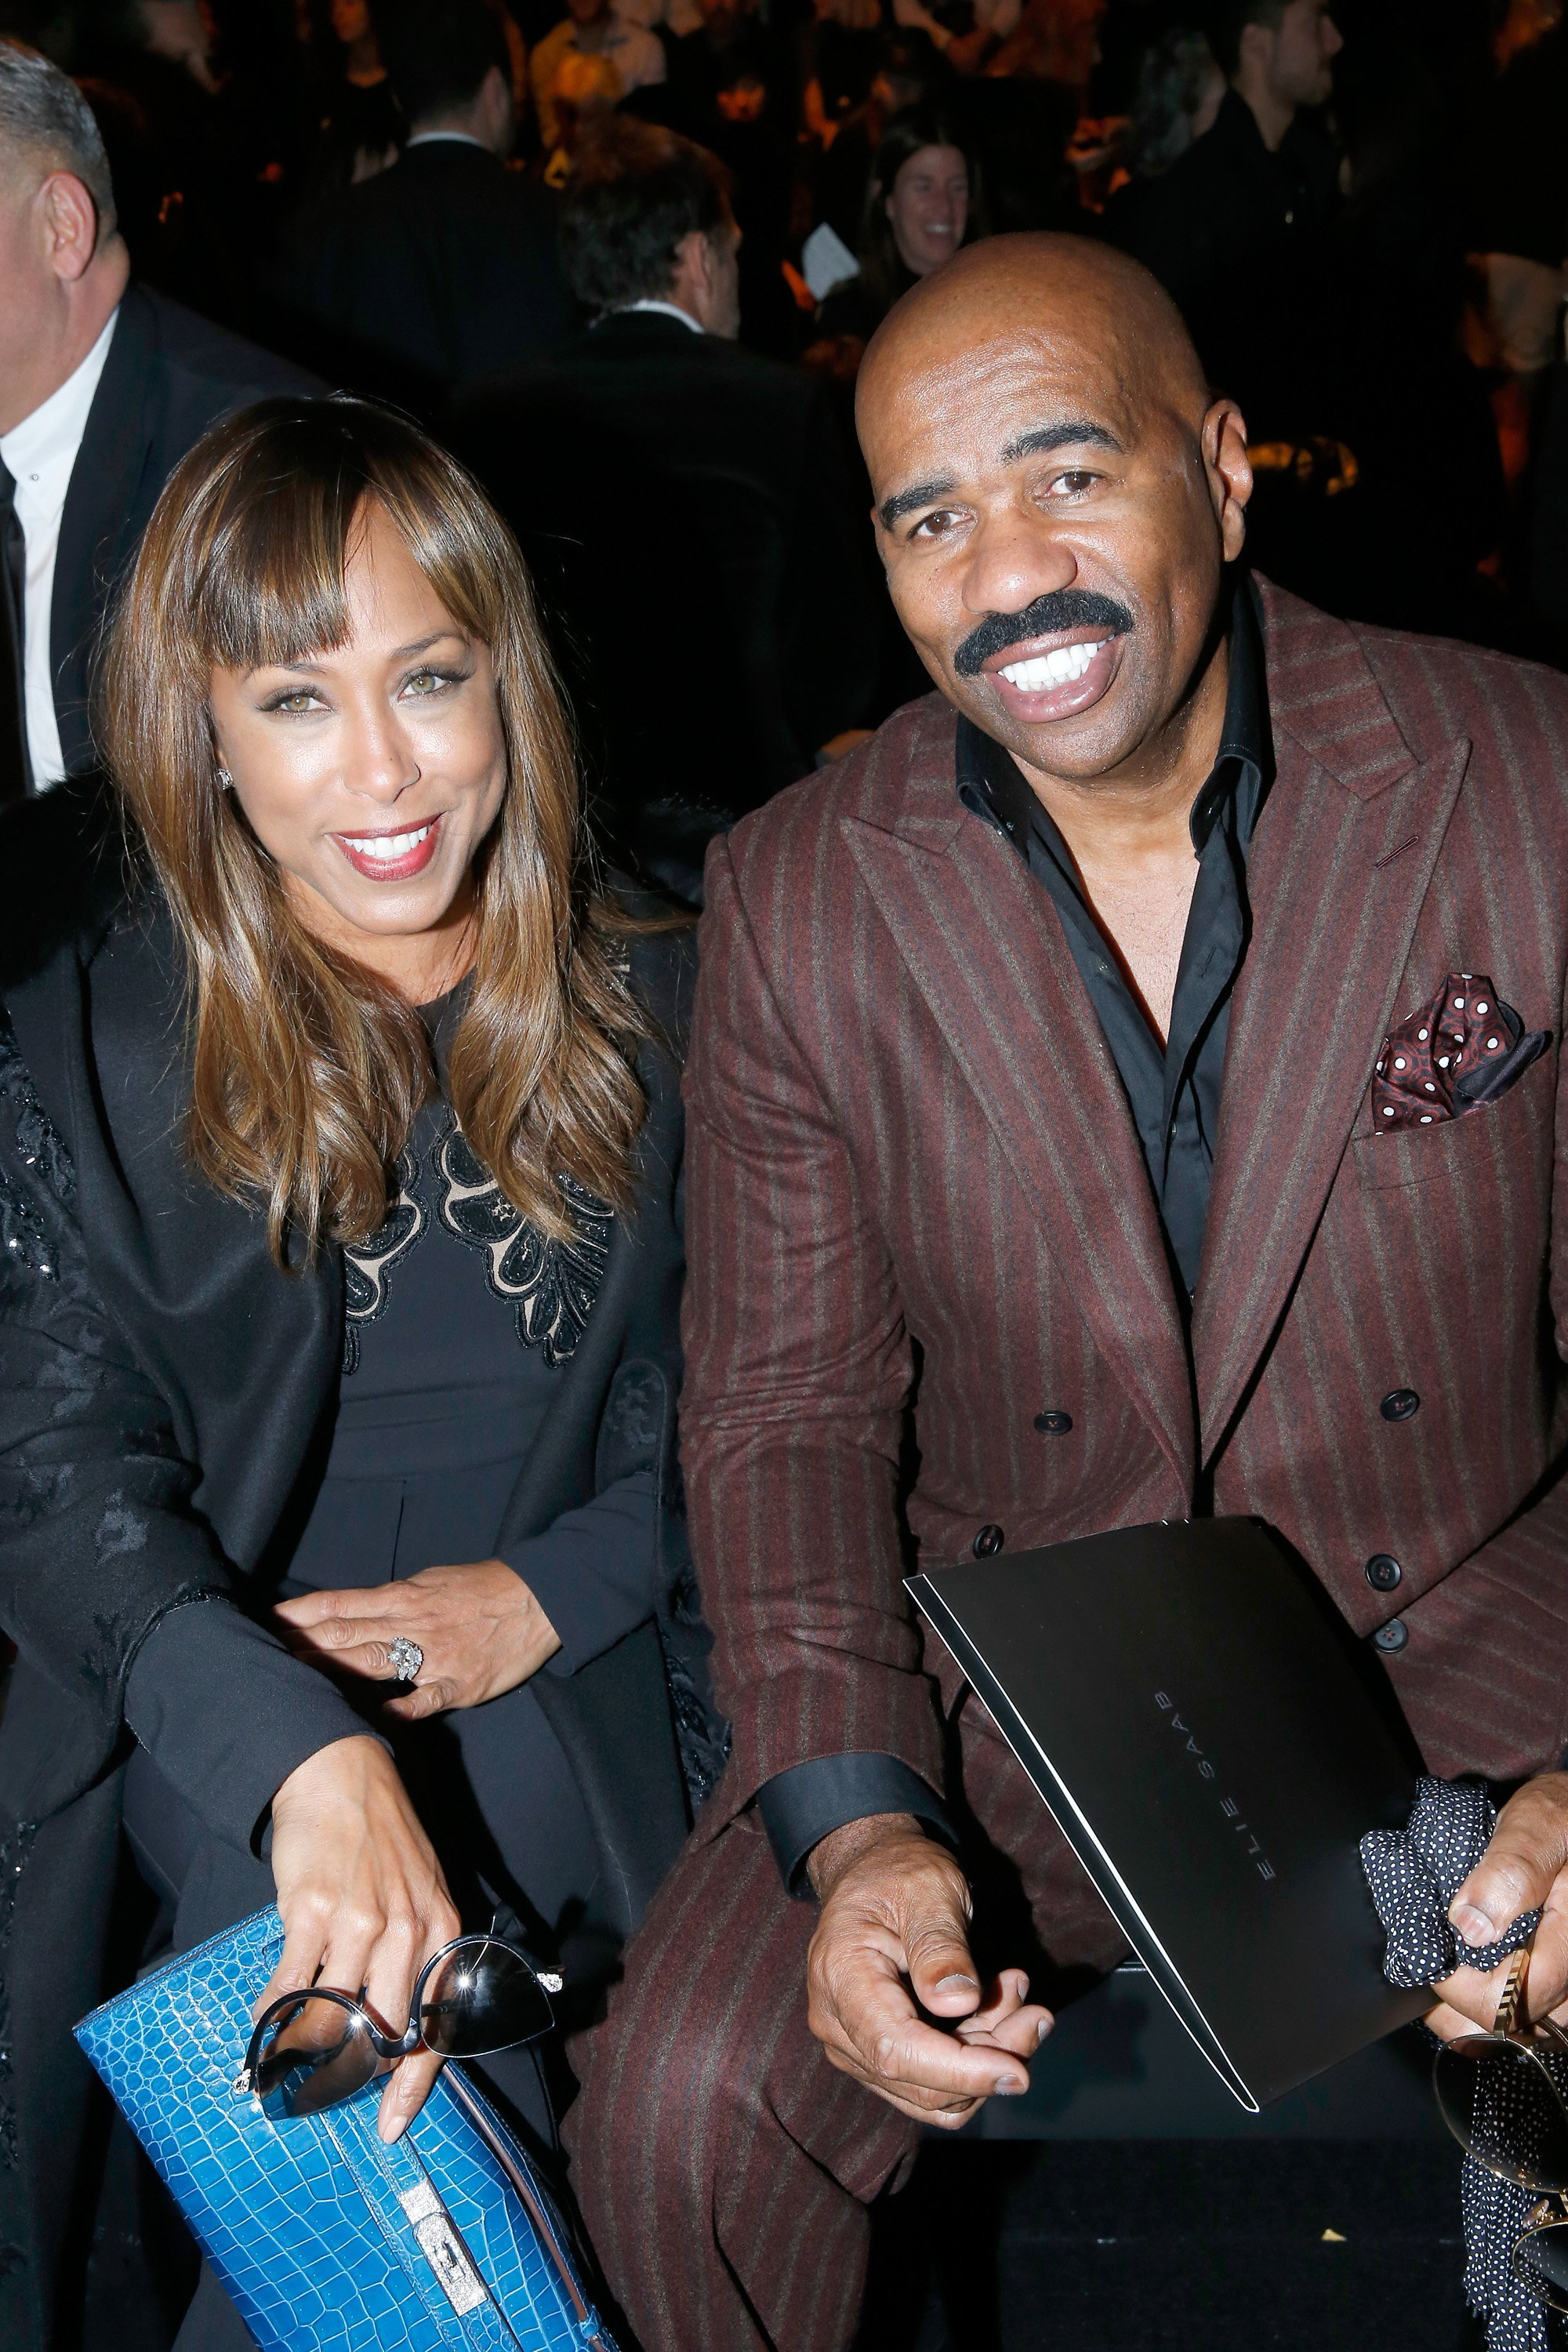 : TV Host Steve Harvey with his wife Marjorie attend the Elie Saab show as part of the Paris Fashion Week Womenswear Spring/Summer 2016 |Photo: Getty Images